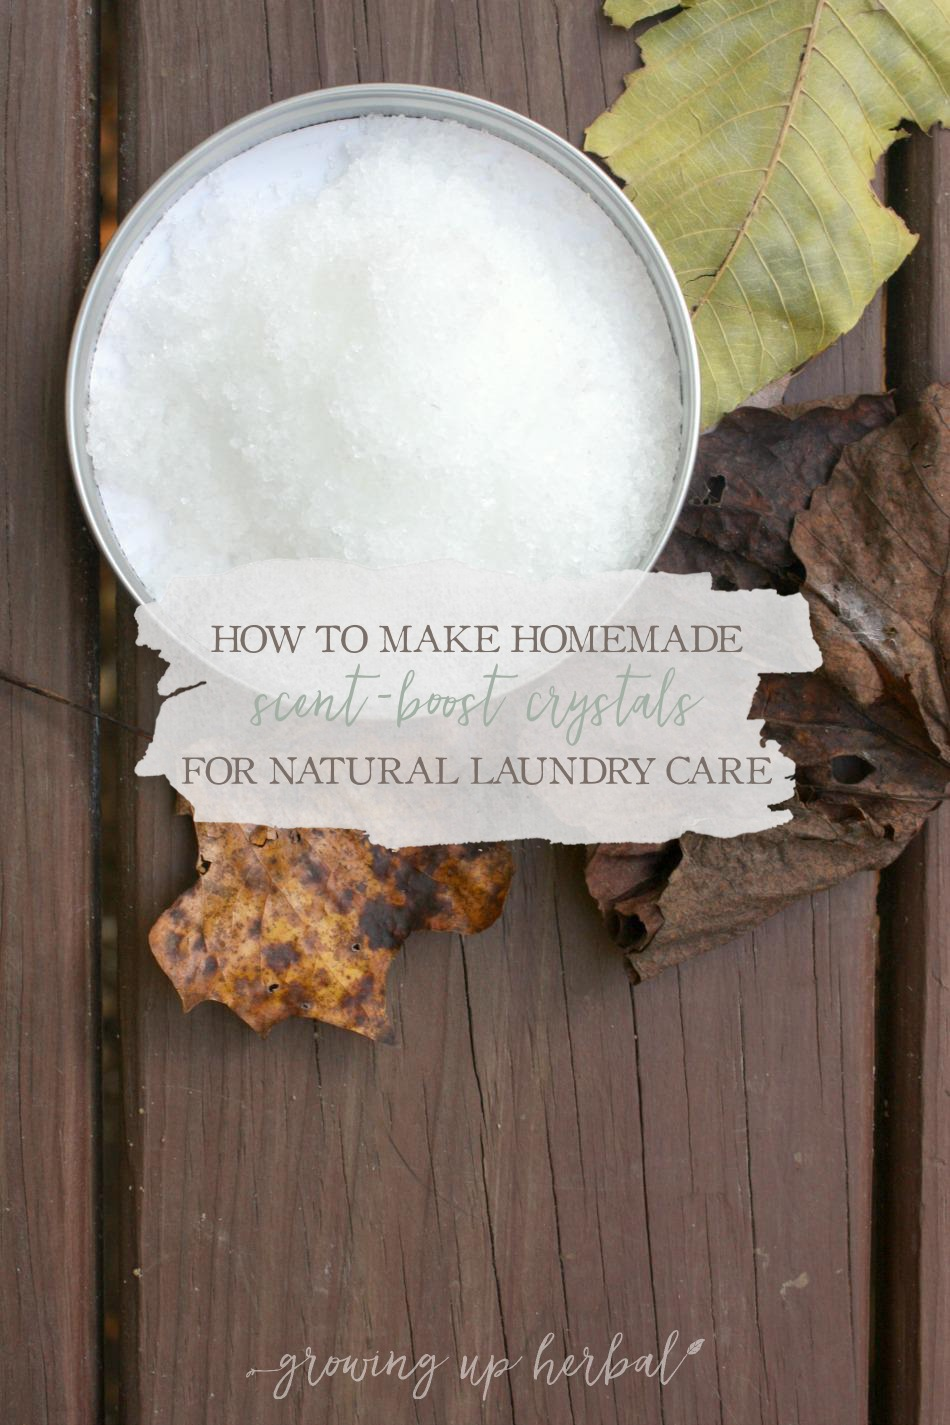 Homemade Scent-Boost Crystals | Growing Up Herbal | Are you bummed your clothes aren't smelling as fresh as you'd like when you use natural laundry products? Try these homemade scent-boost crystals and smell the difference!